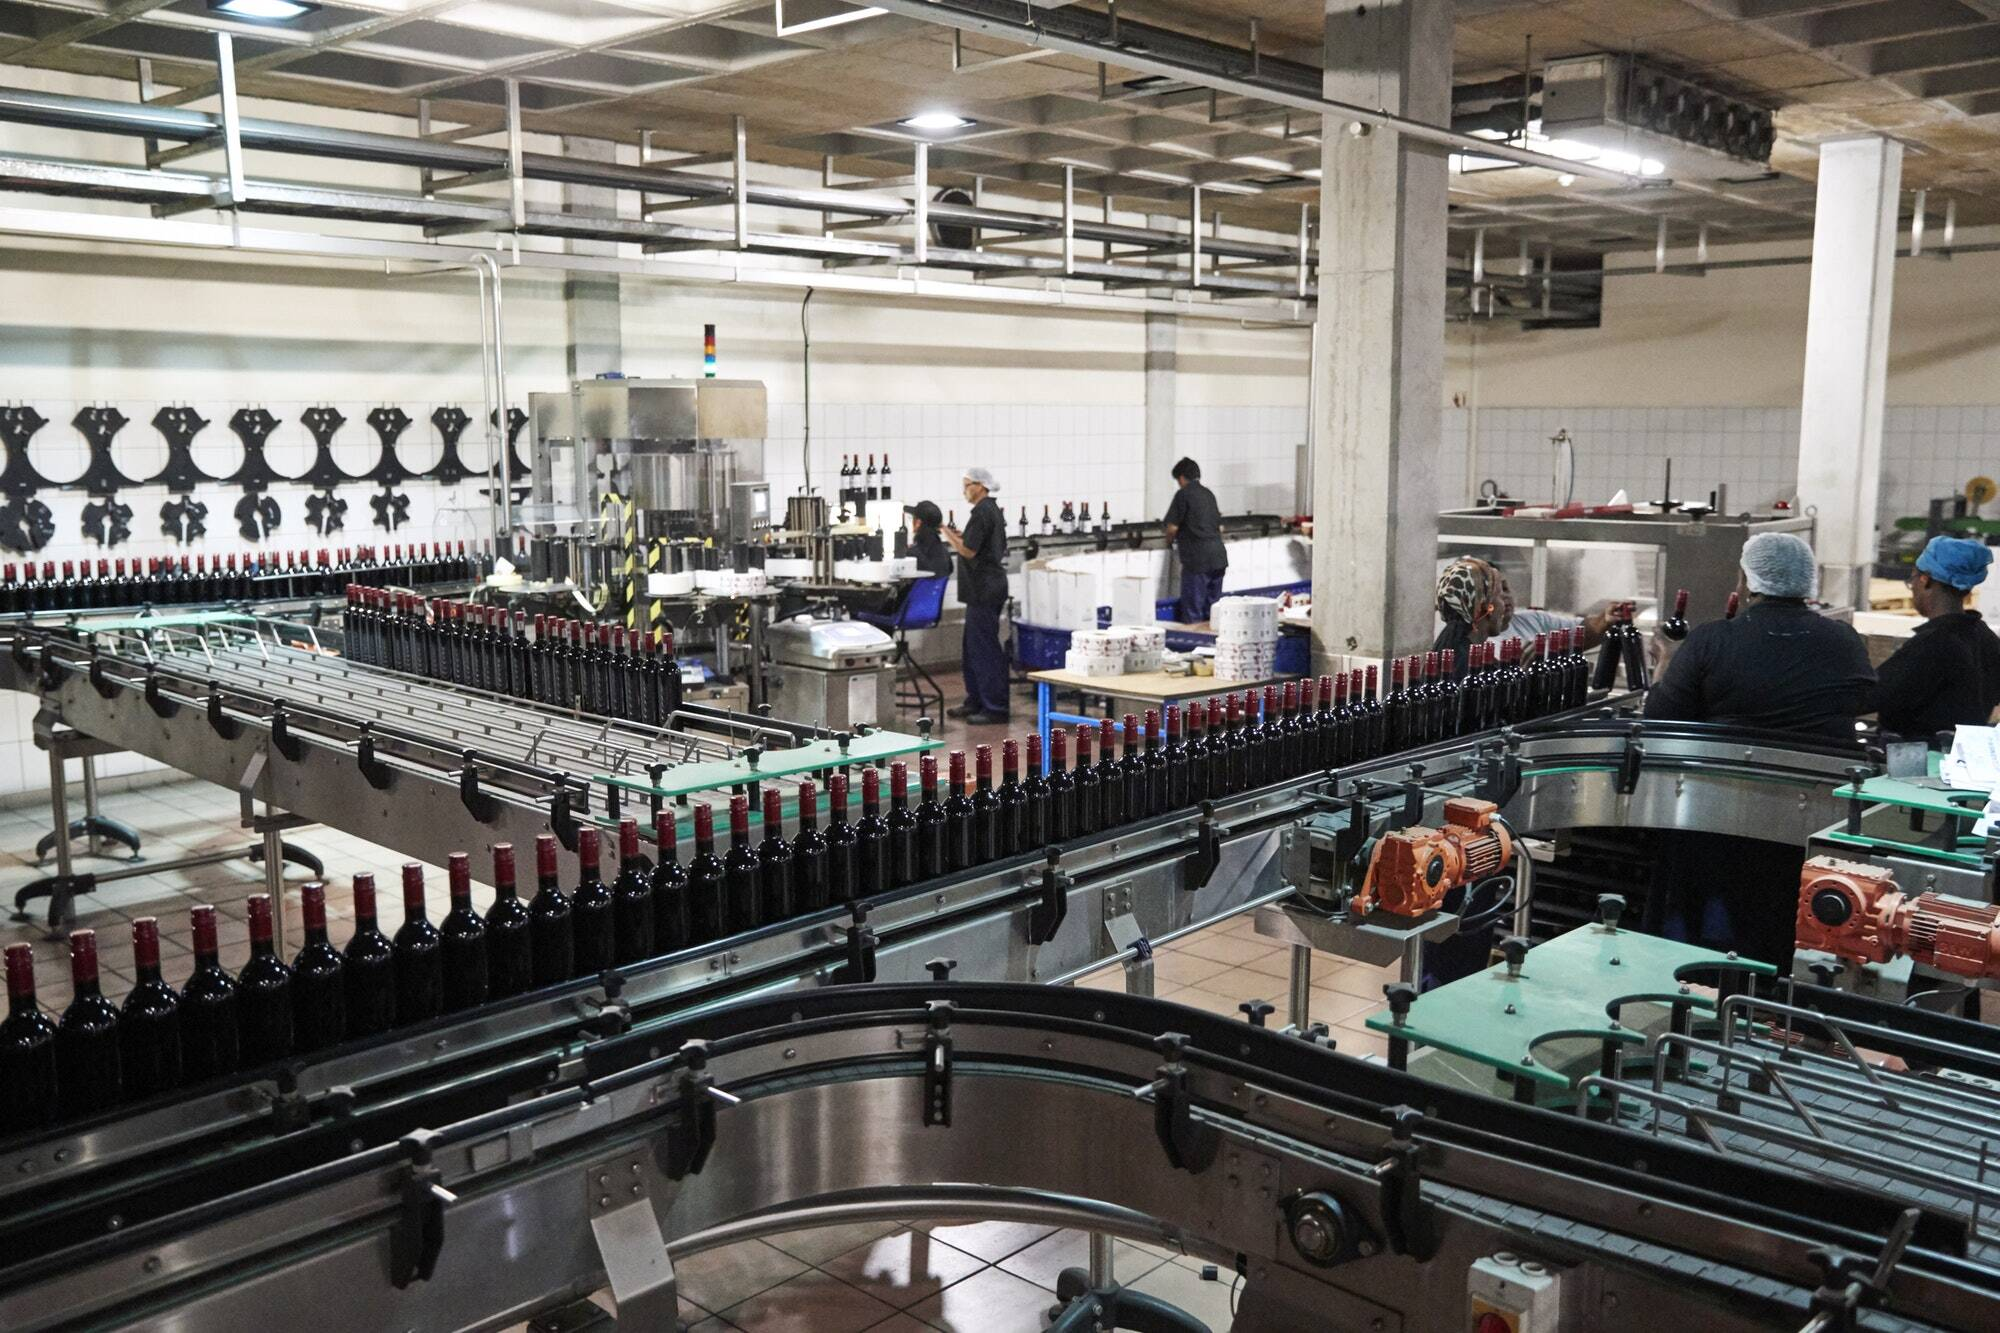 colleagues-working-in-the-bottling-plant-at-a-wine-factory.jpg